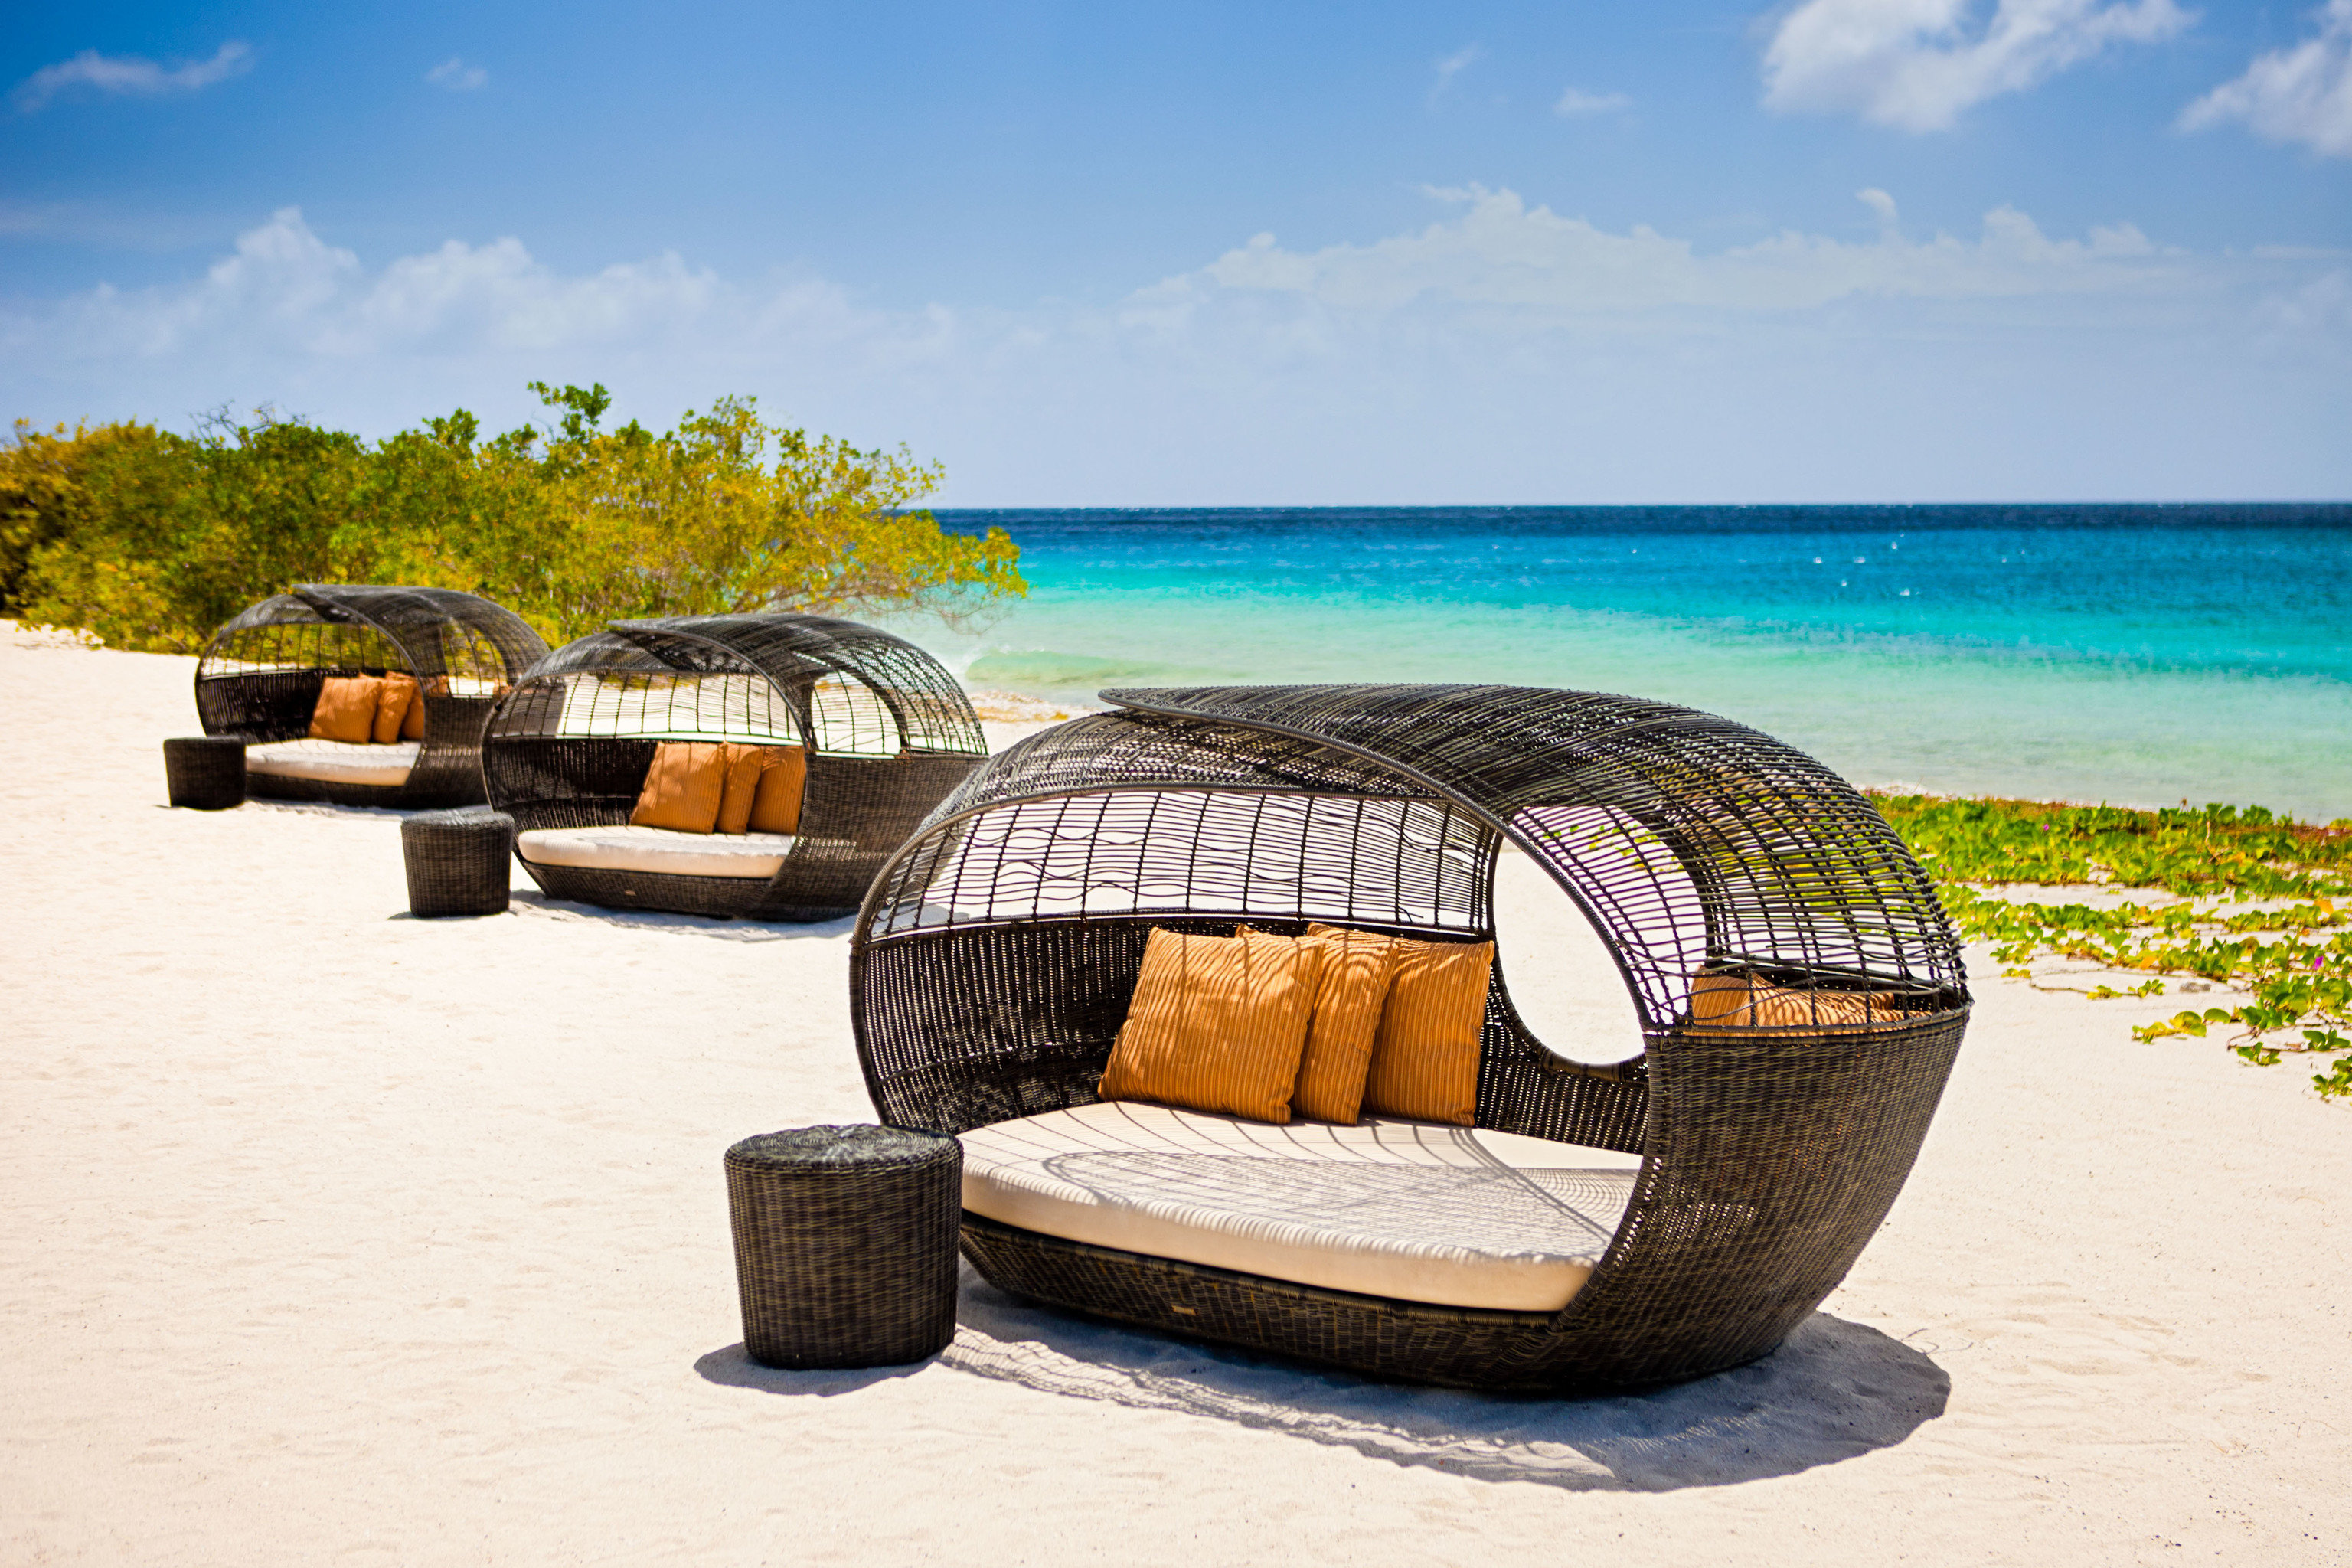 sky water Beach outdoor furniture sunlounger Sea chair landscape product caribbean sand shore sandy